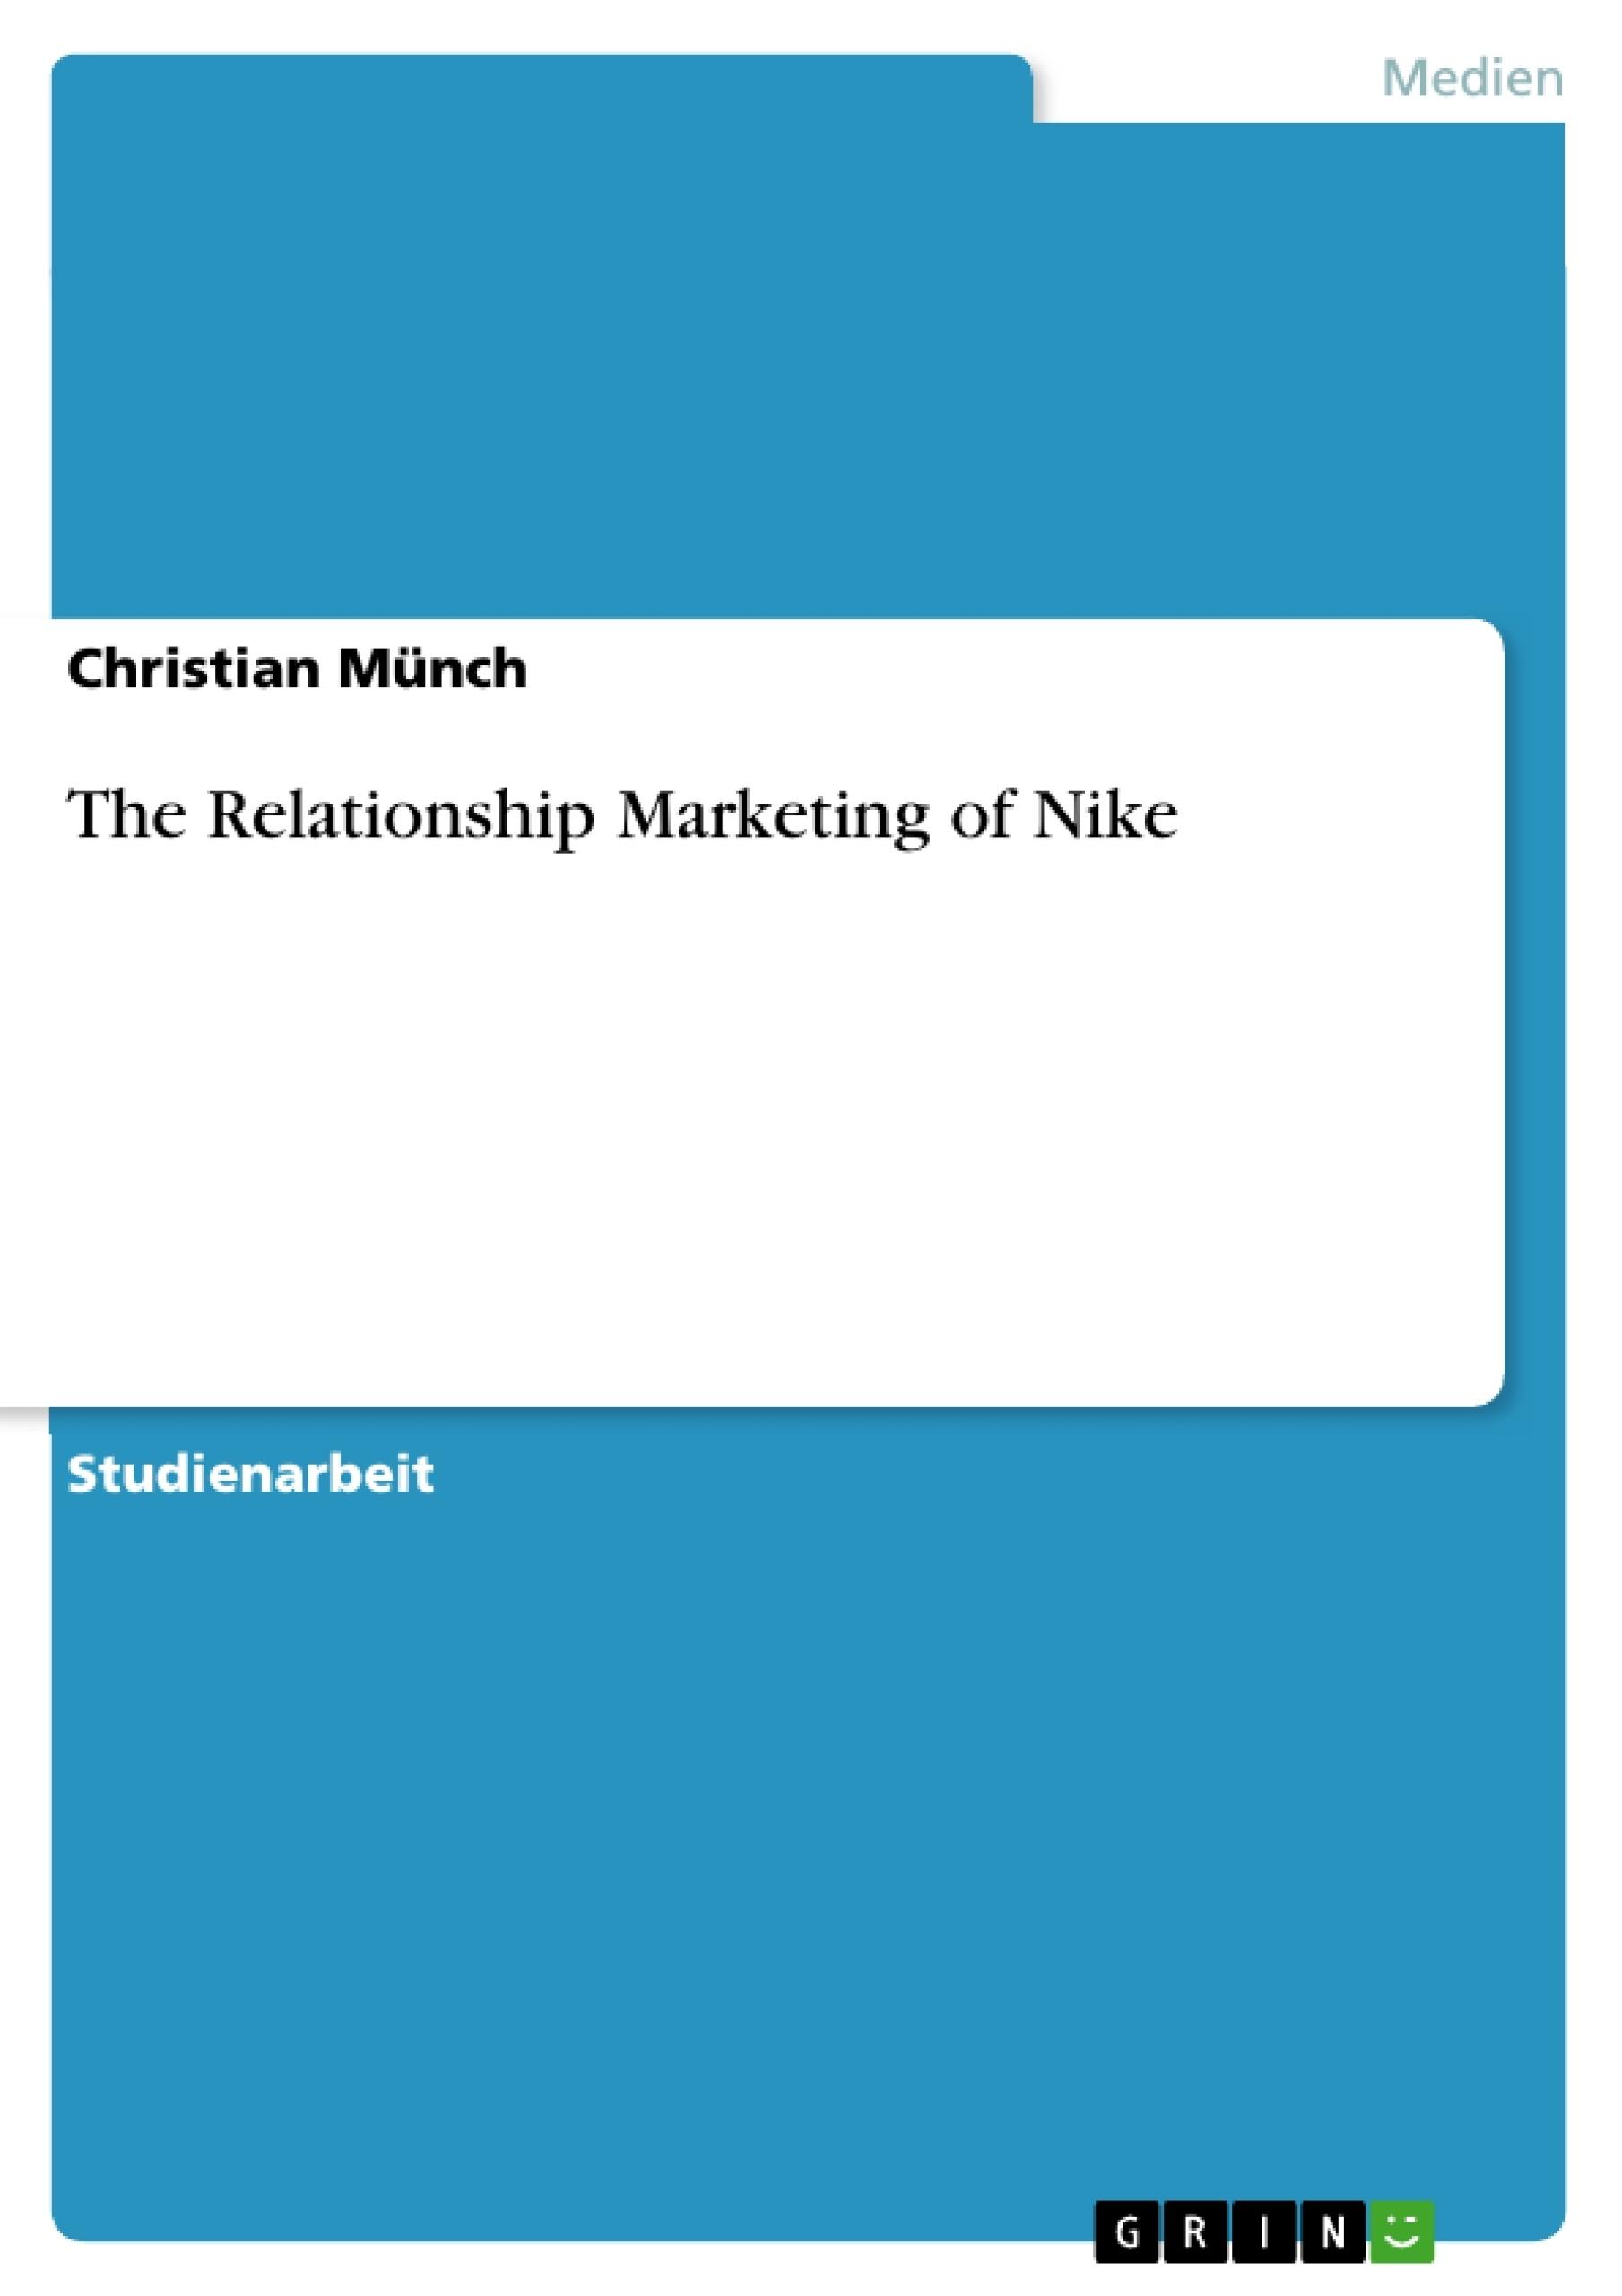 The Relationship Marketing of Nike | Masterarbeit, Hausarbeit ...